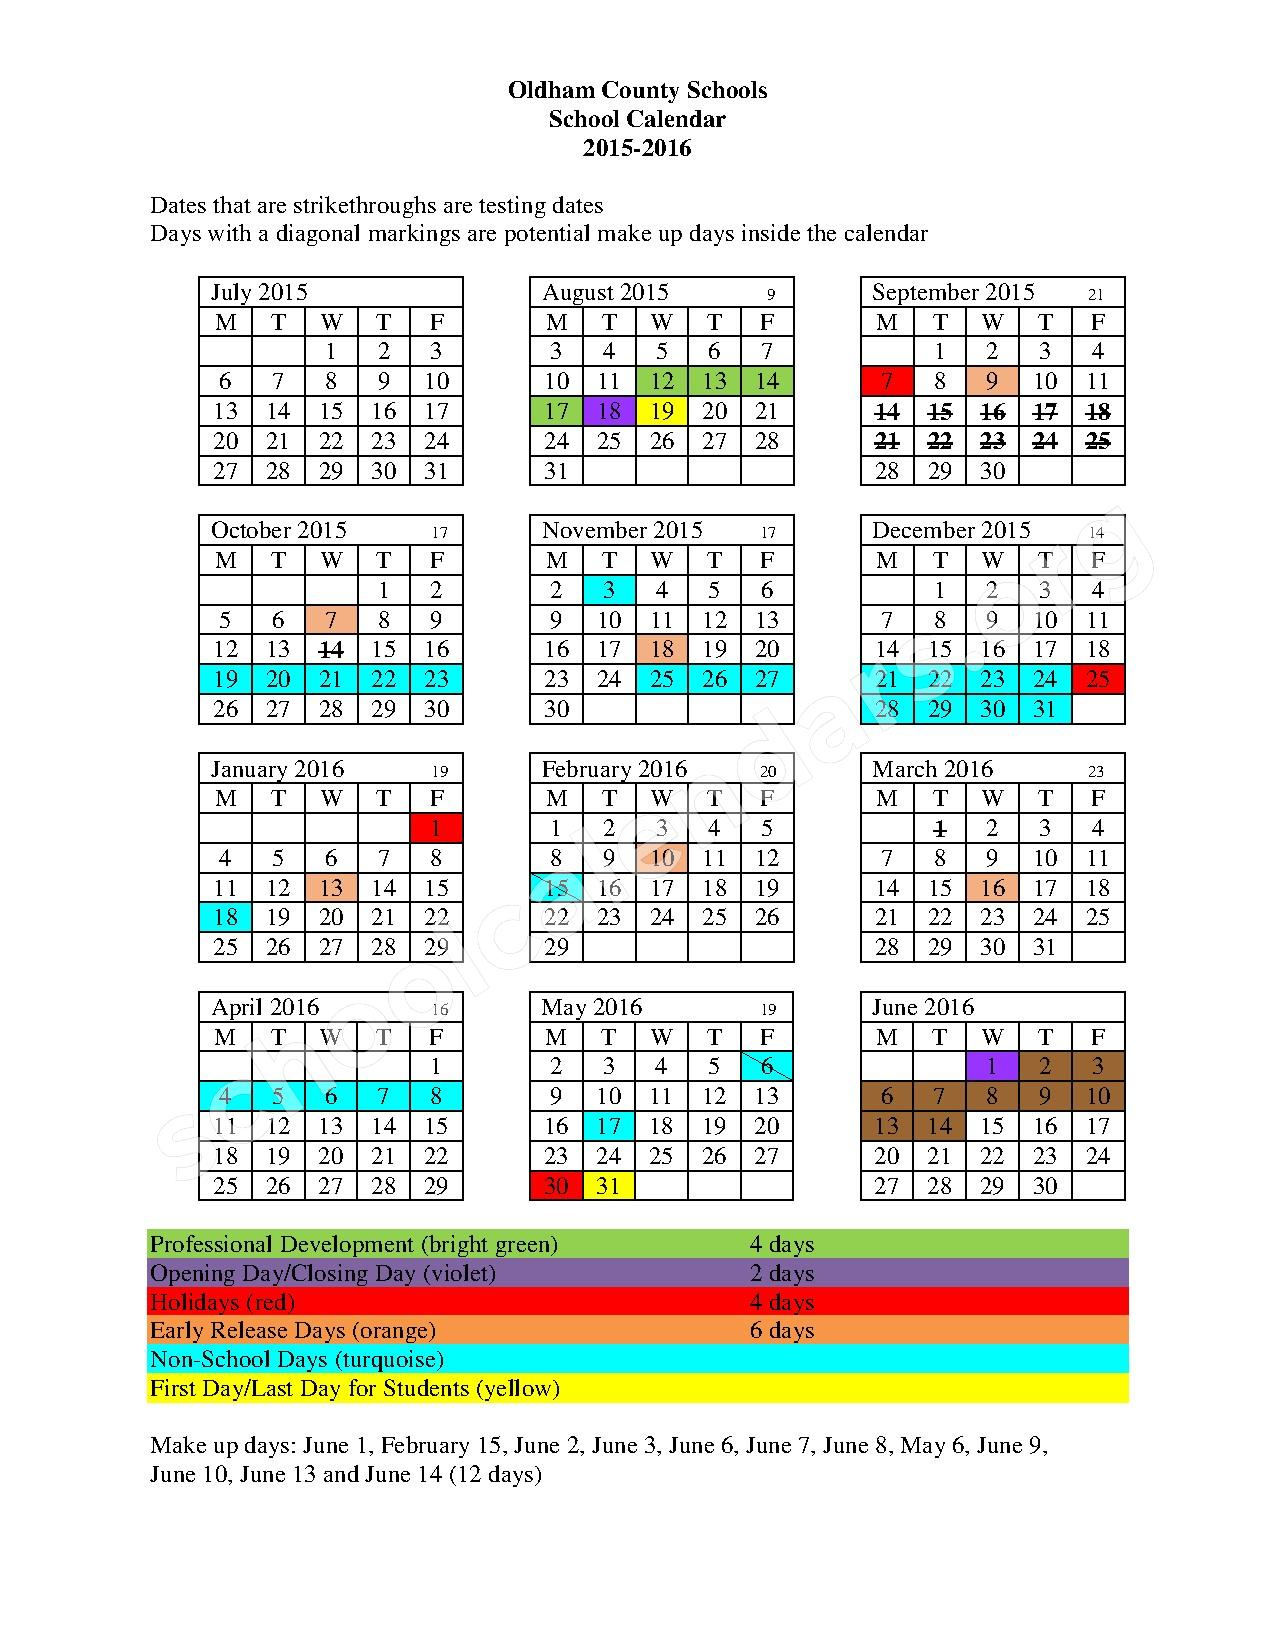 2015 - 2016 School Calendar | South Oldham High School With Aiken High School Sc Calendar For 2015